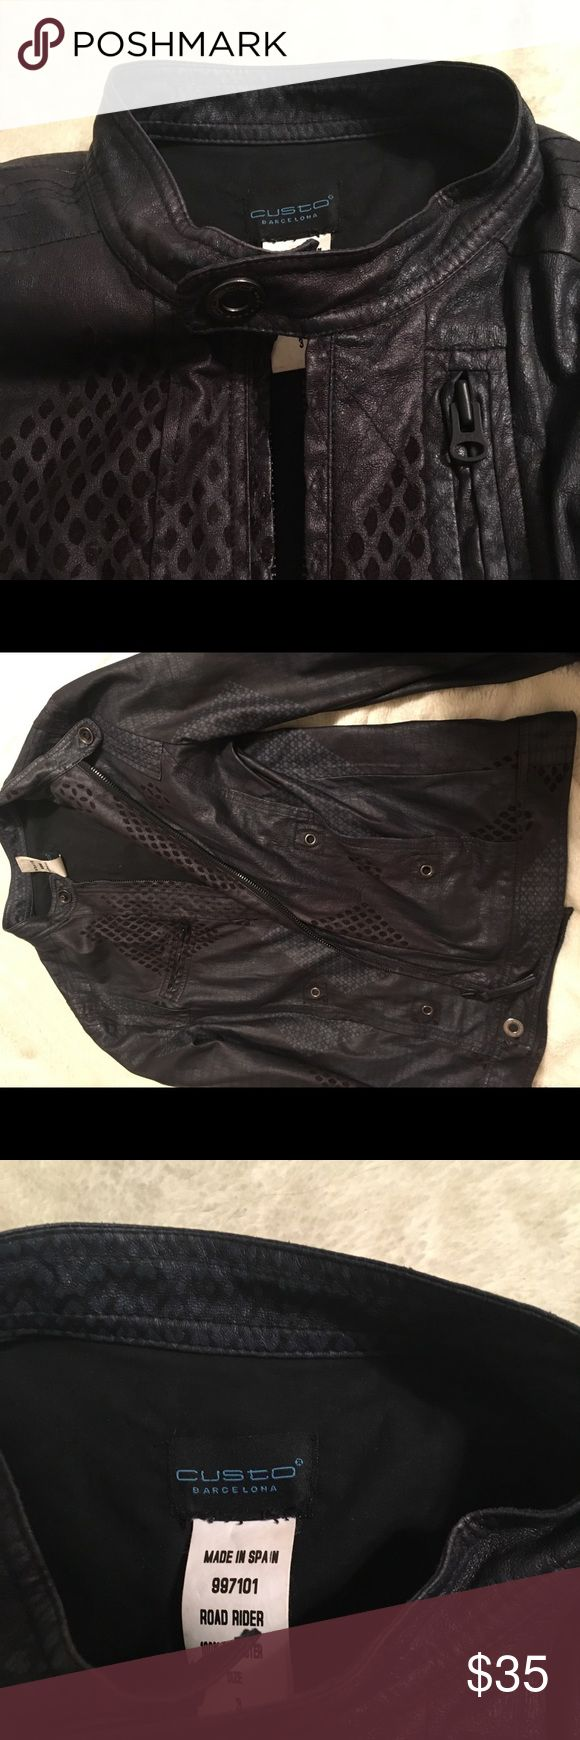 Custo Barcelona Vegan Leather Jacket Custo Barcelona Vegan Leather Jacket Black with Blue detailing and pattern Snap up Color snap Zipper pockets  Size 3 = Large (runs small)   In great condition!! Custo Barcelona Jackets & Coats Utility Jackets